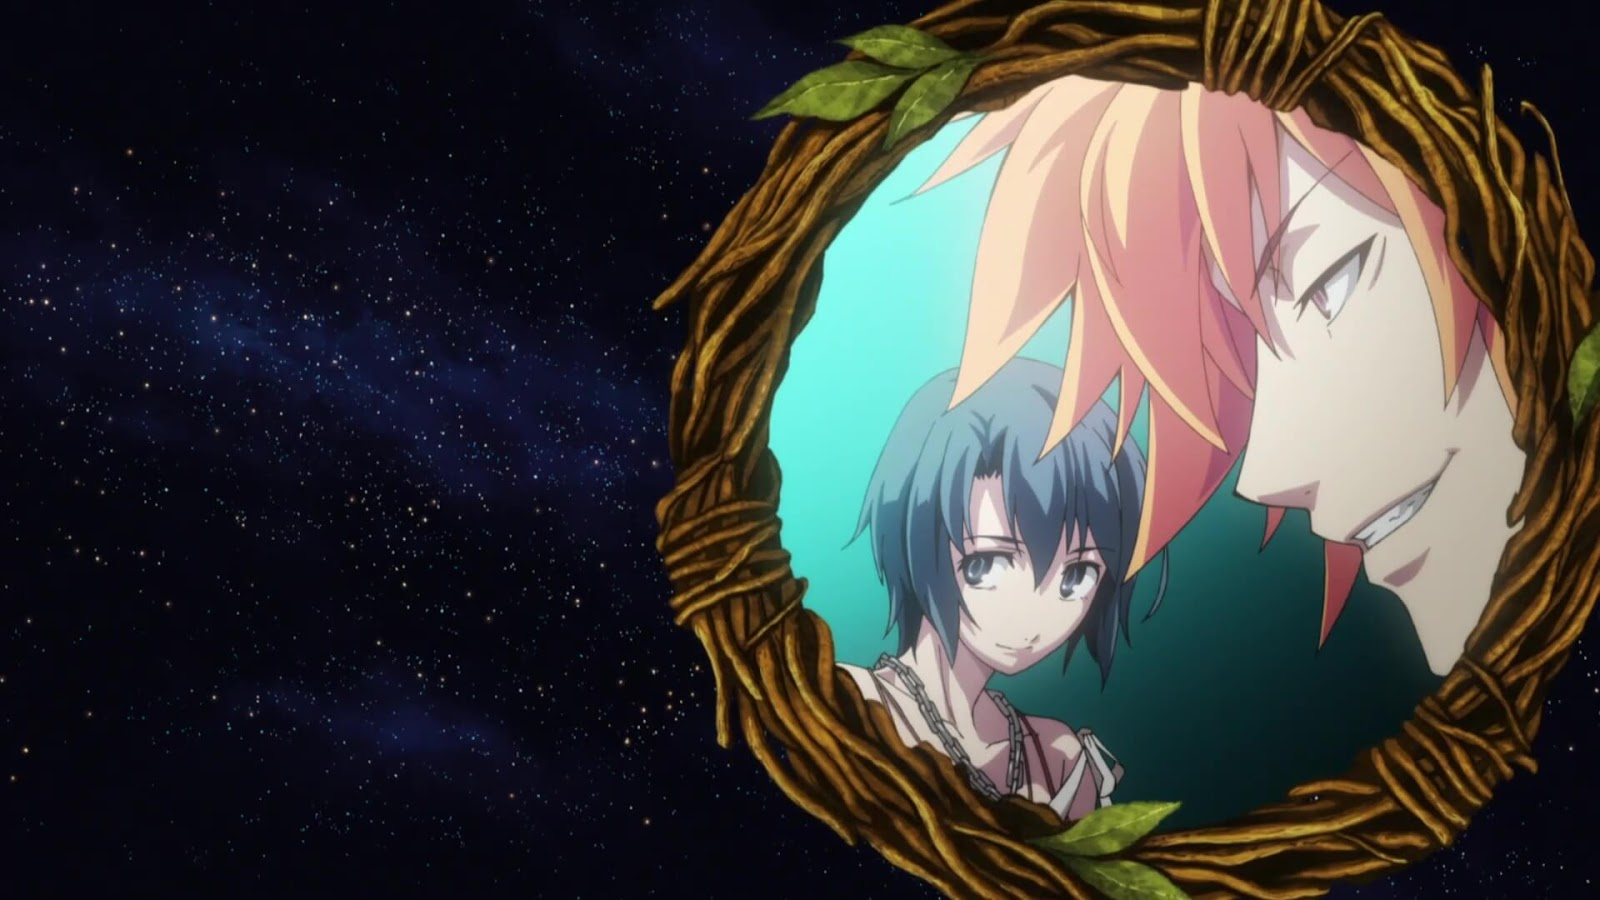 Dies Irae: To the Ring Reincarnation Ending 1 1080p